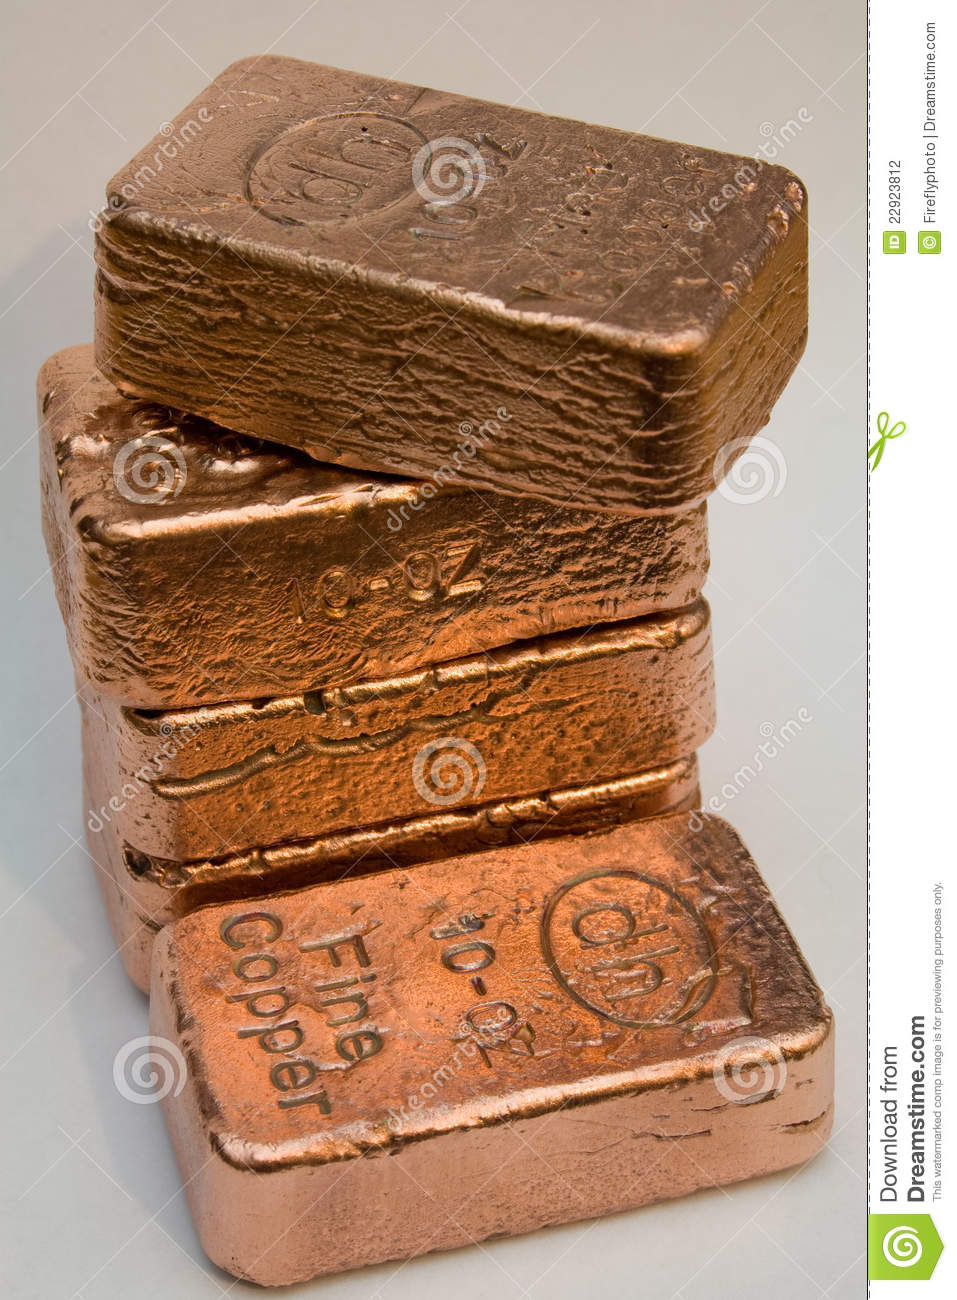 10 Ounce Pure Copper Bullion Bars Editorial Photography